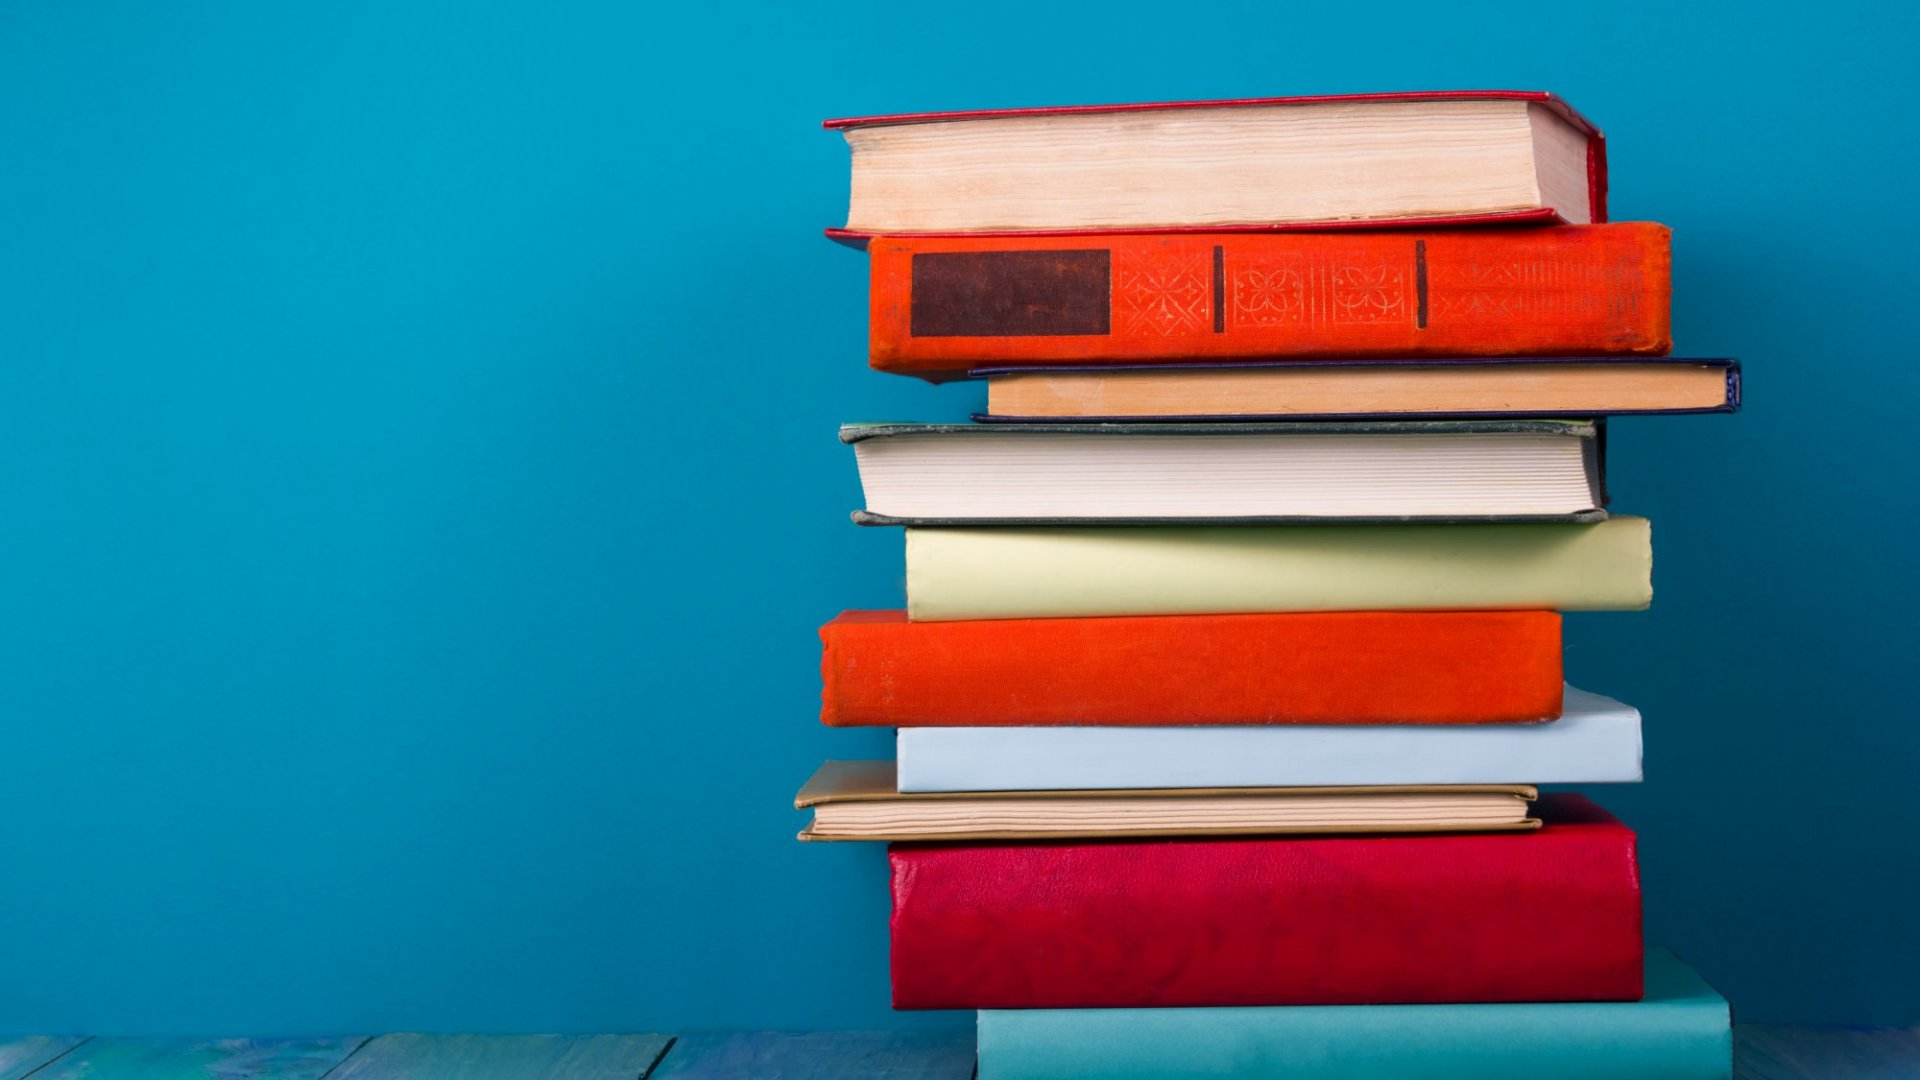 Reading Fiction Will Improve Your Leadership Skills. Just Ask Jeff Bezos, Bill Gates, and Oprah